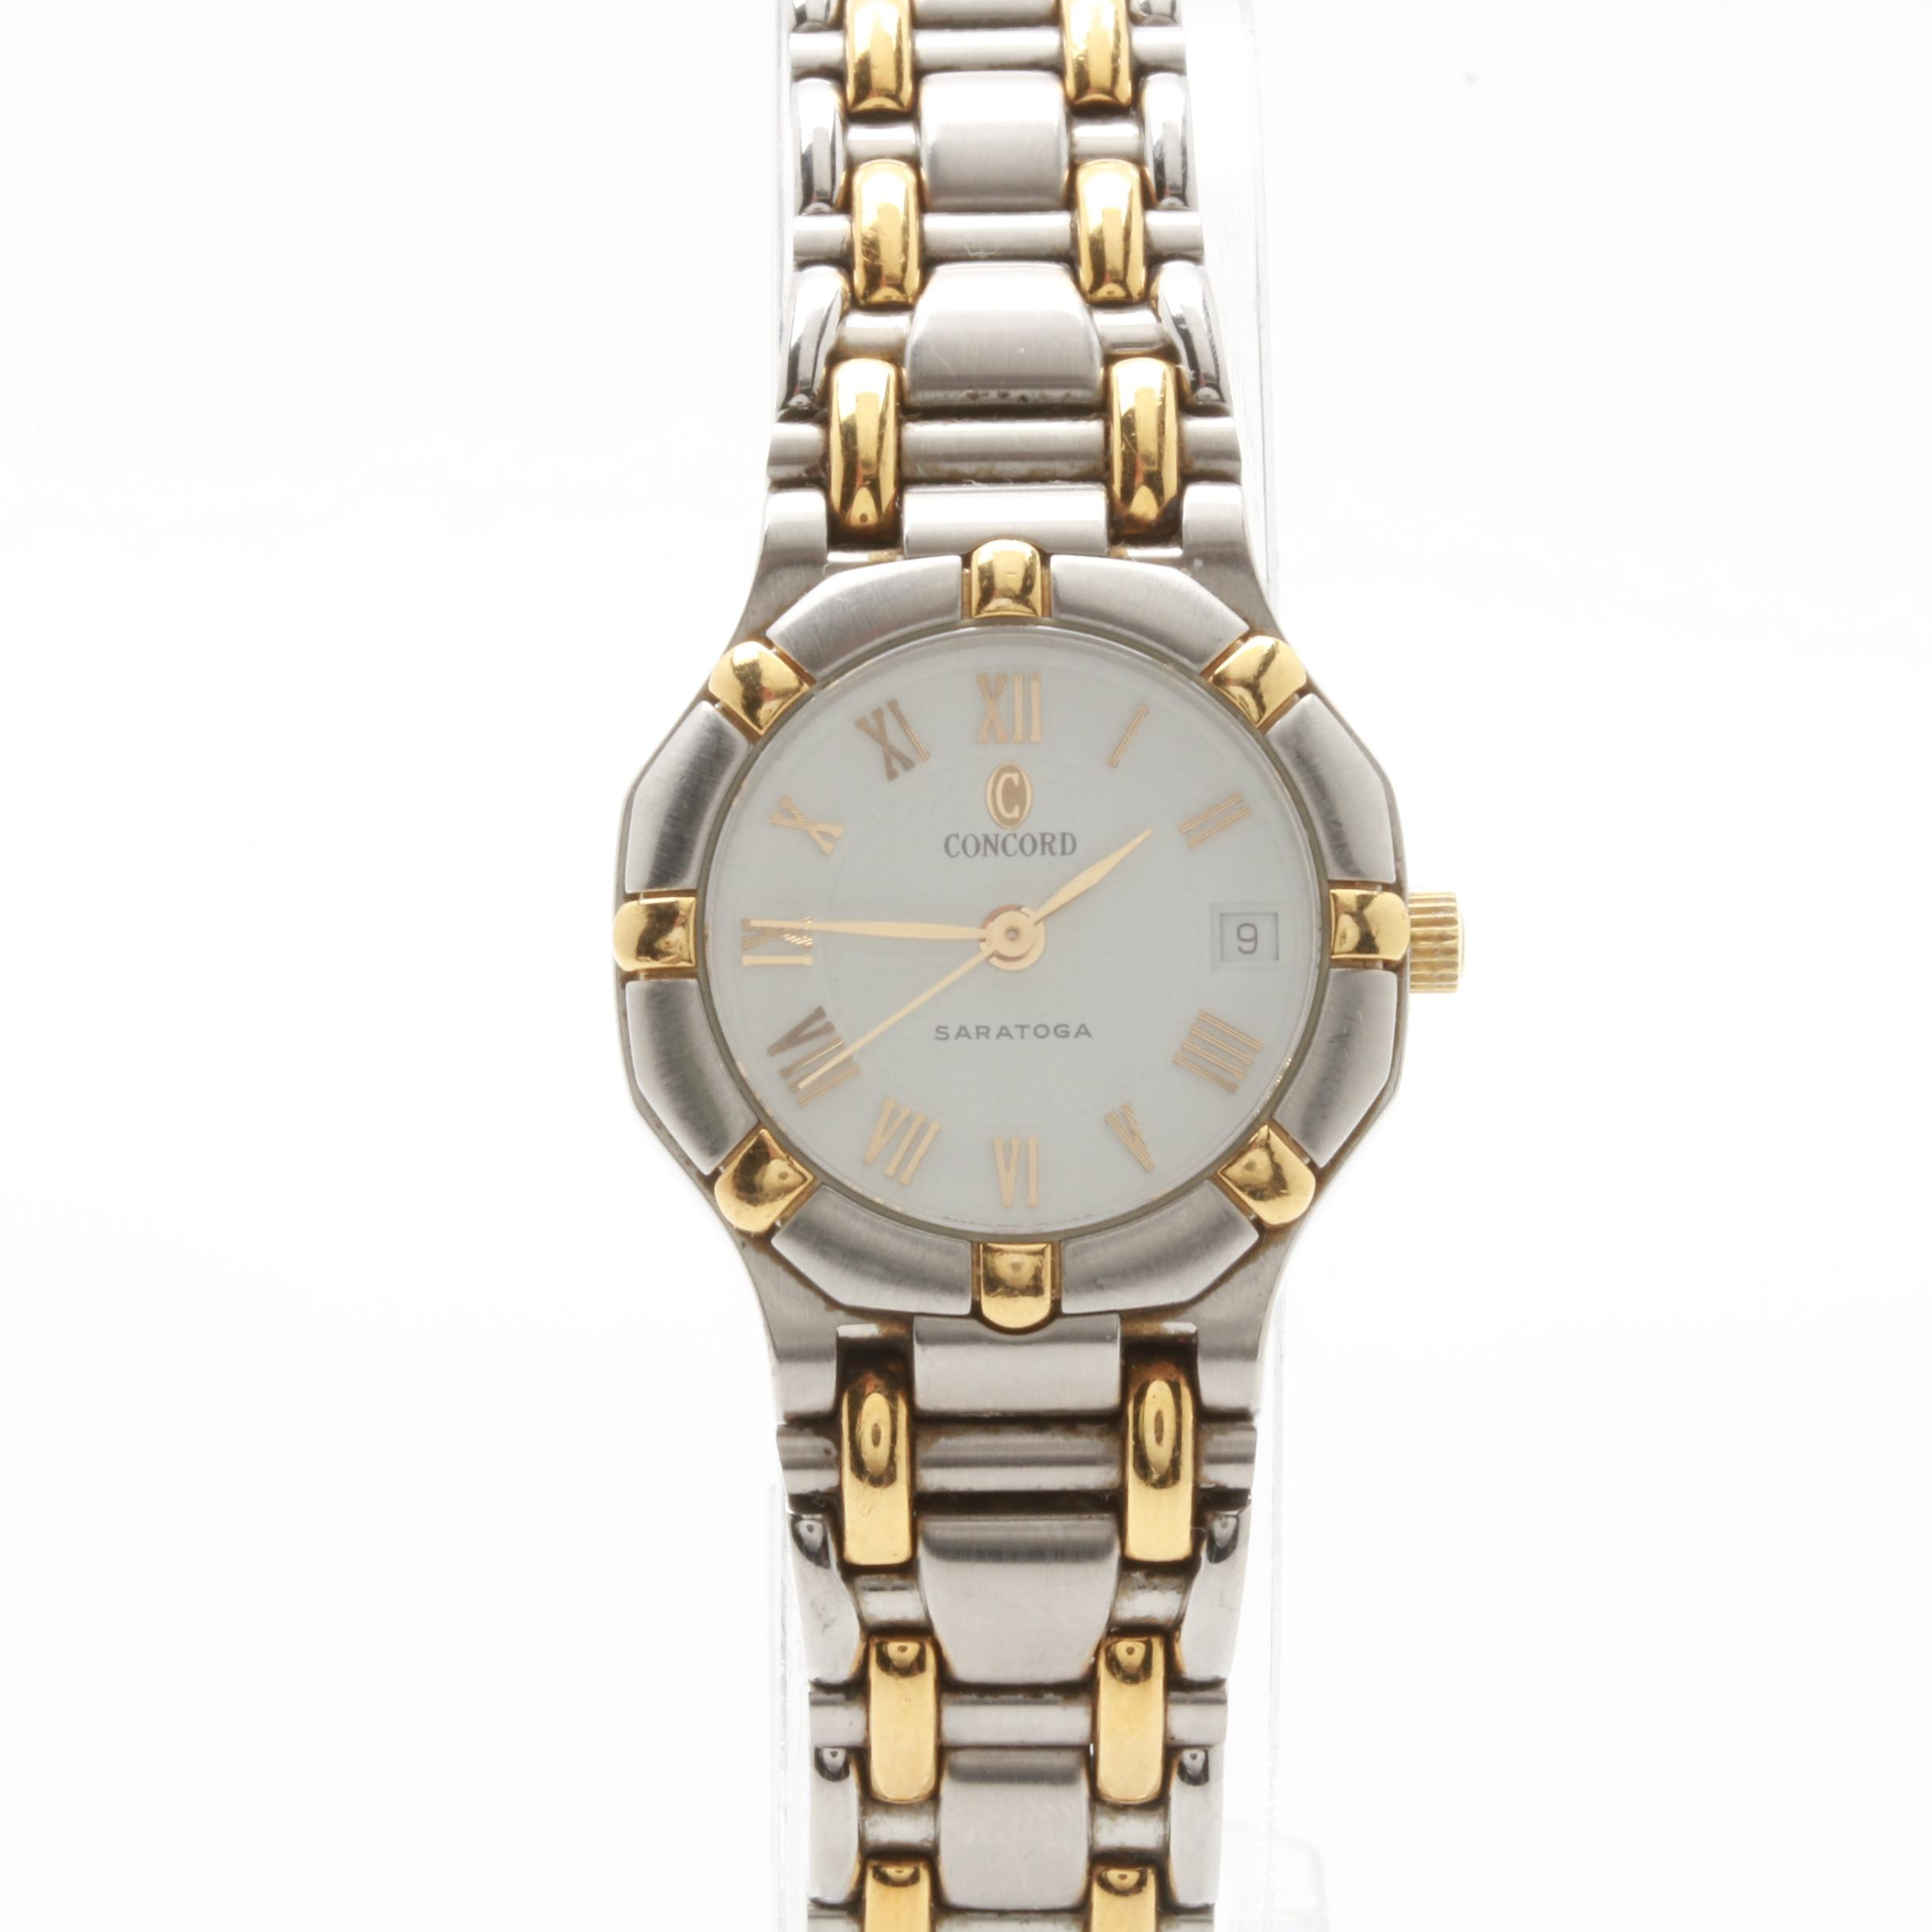 Concord Saratoga Stainless Steel and 18K Yellow Gold Wristwatch